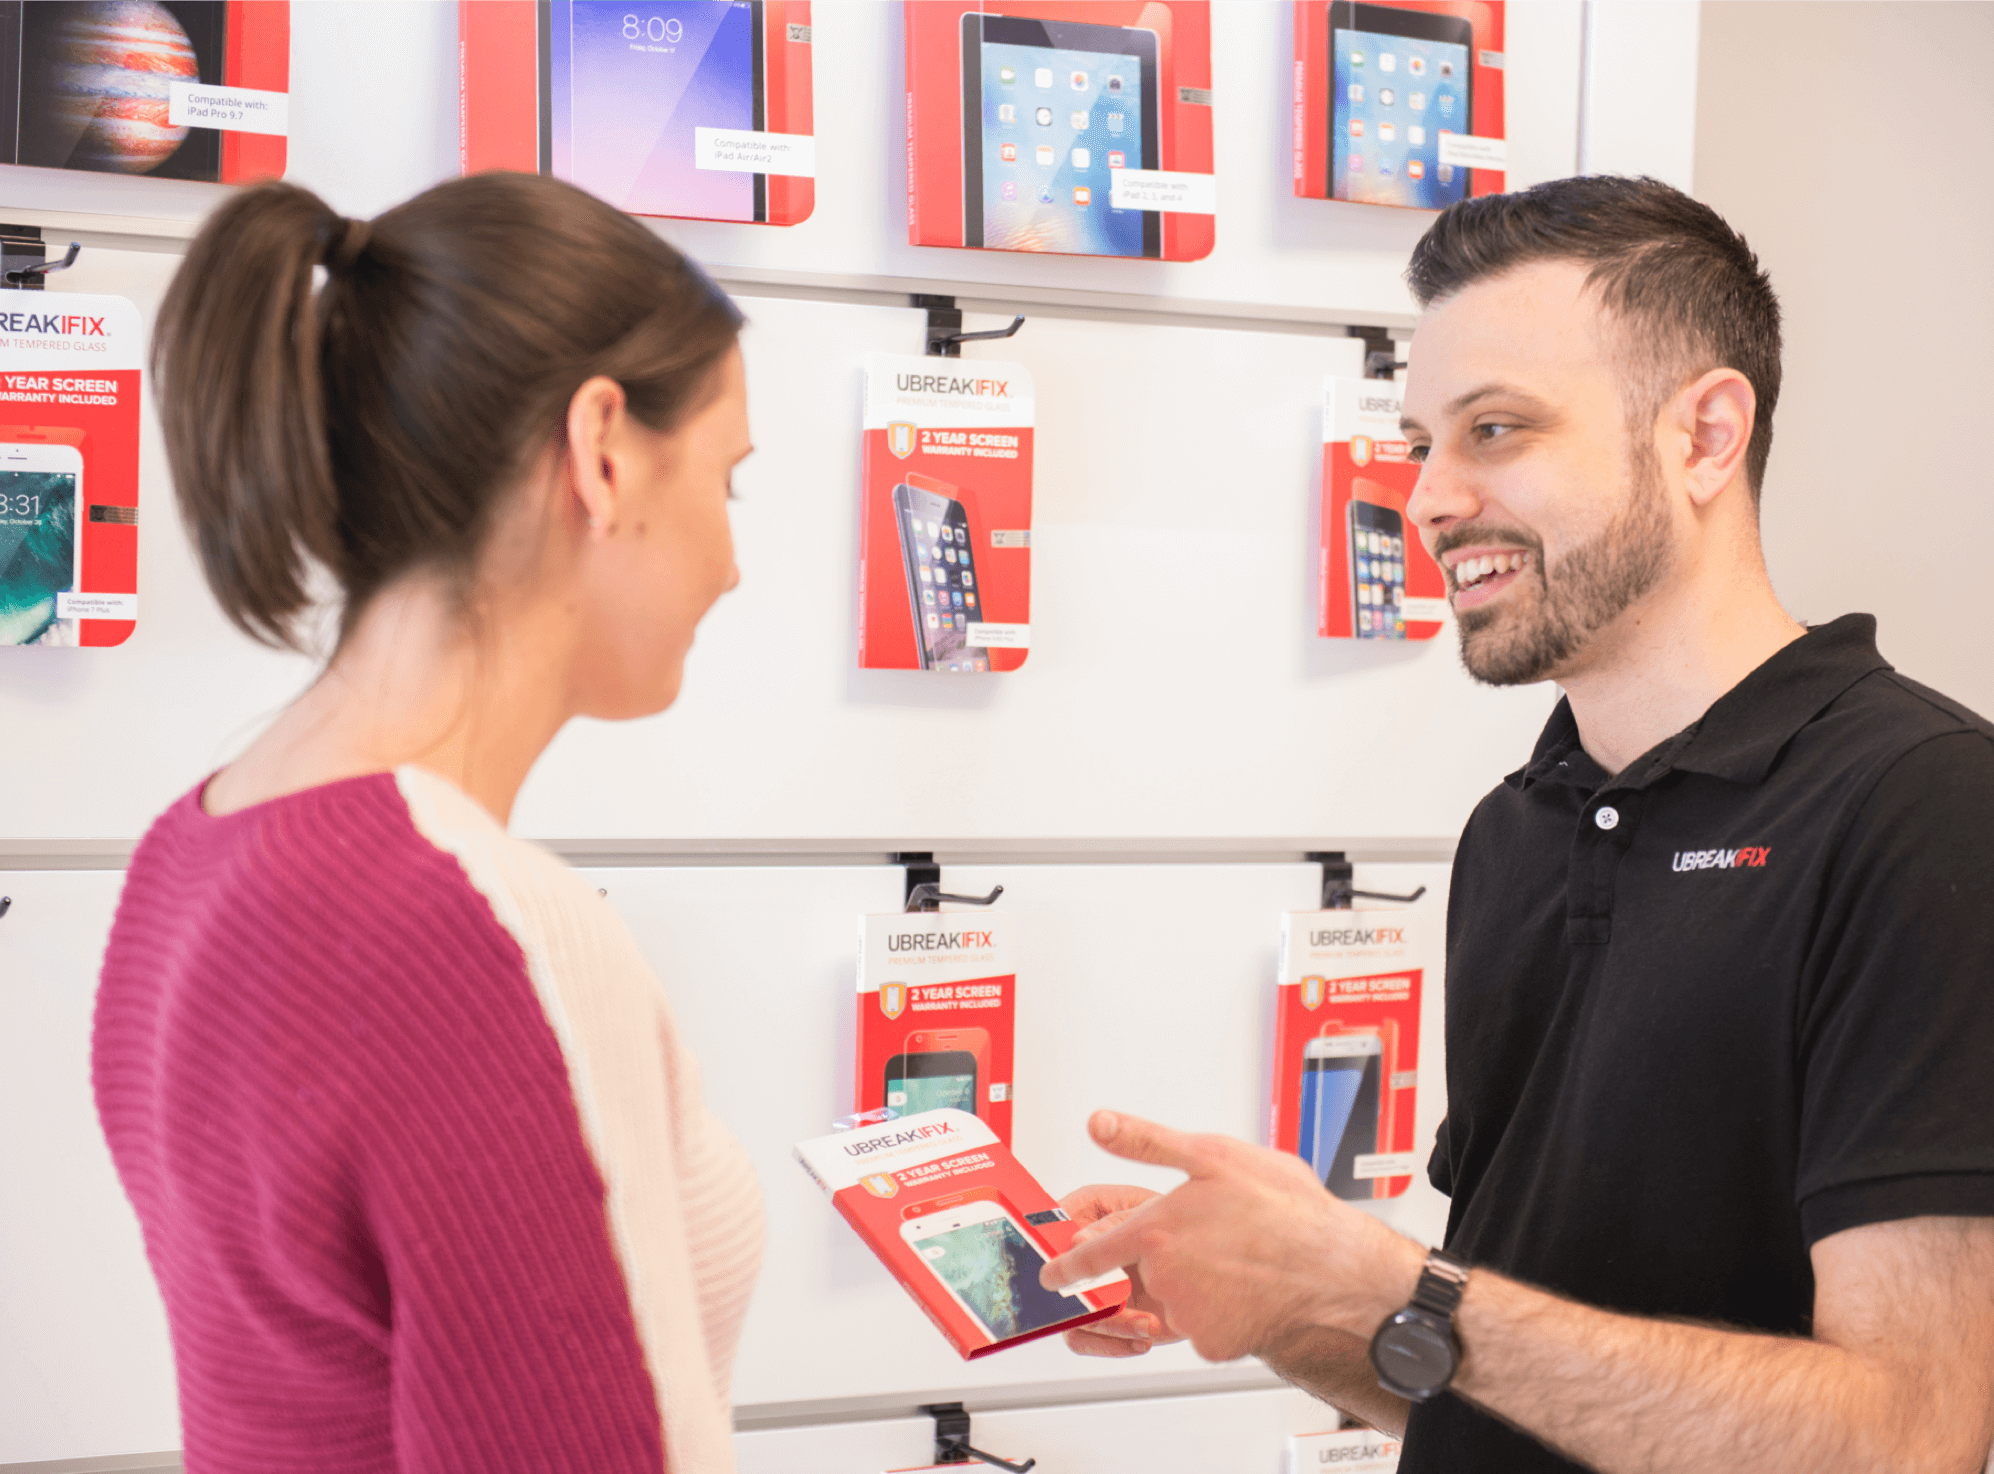 Tech repair franchise joins Samsung's efforts to responsibly reduce e-waste with hassle-free tech recycling in stores